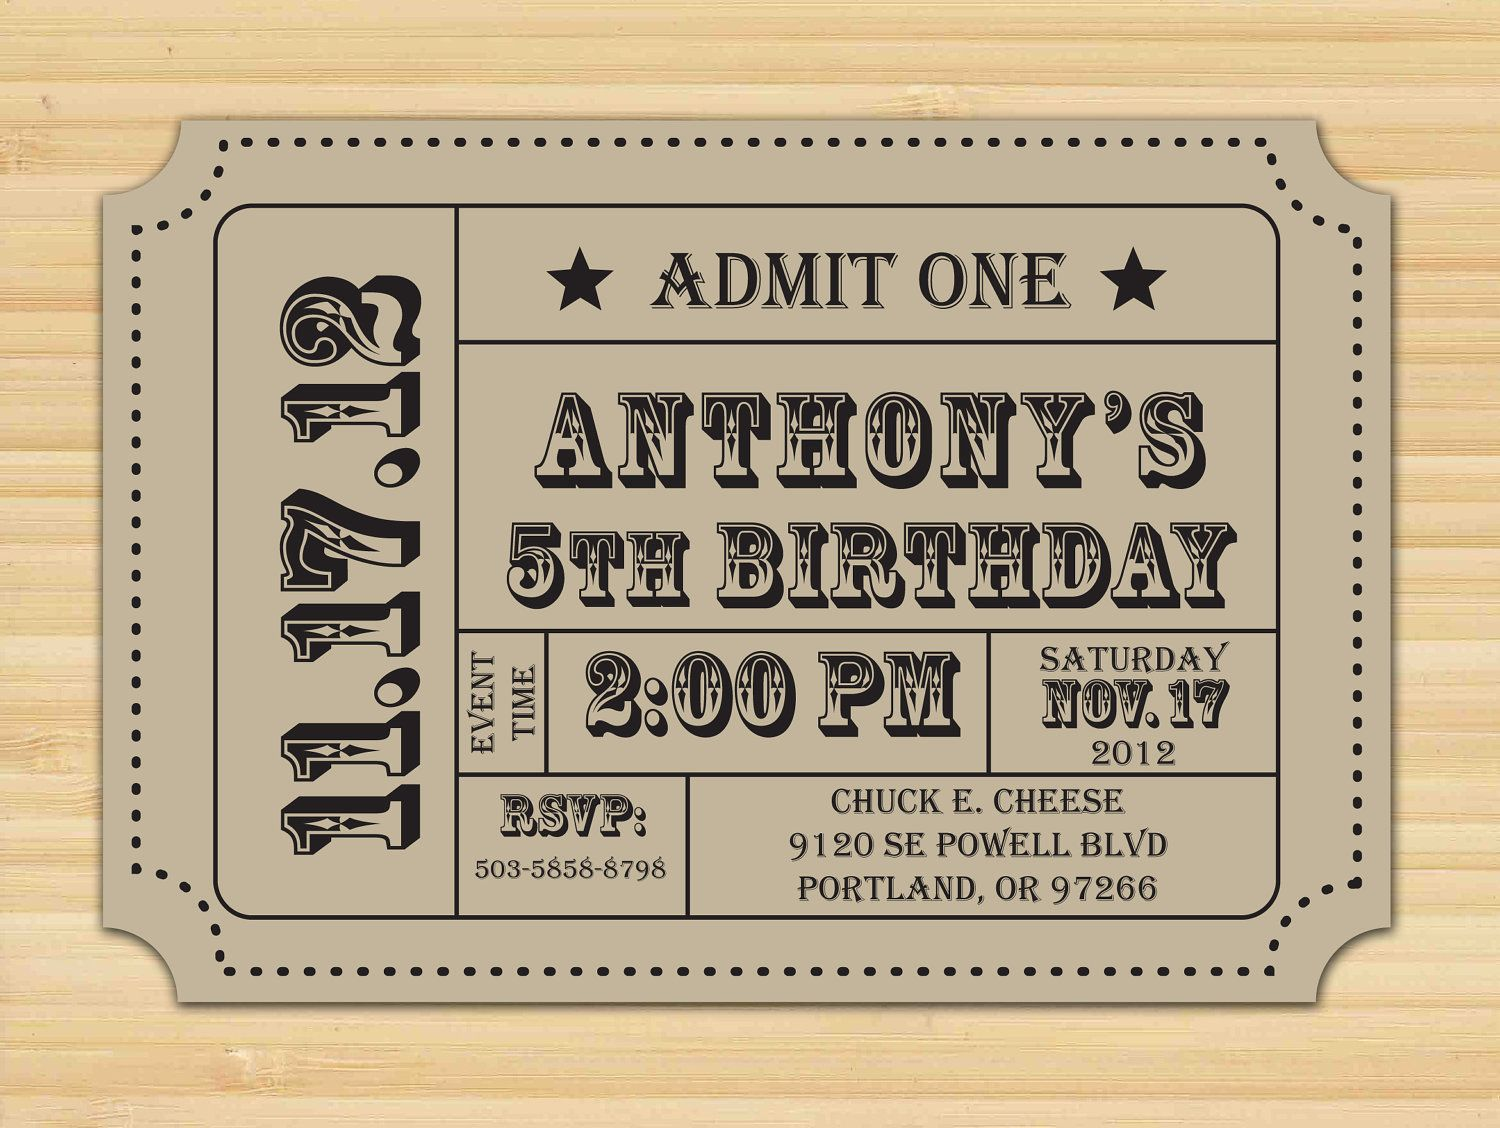 Carnival Ticket Invitation Ticket Stub Editable Invitation  8eb96265e2b6cc02909afbd4d8e4d888 191825265352521359. Free Printable Movie  Ticket Invitations  Free Printable Movie Ticket Invitations